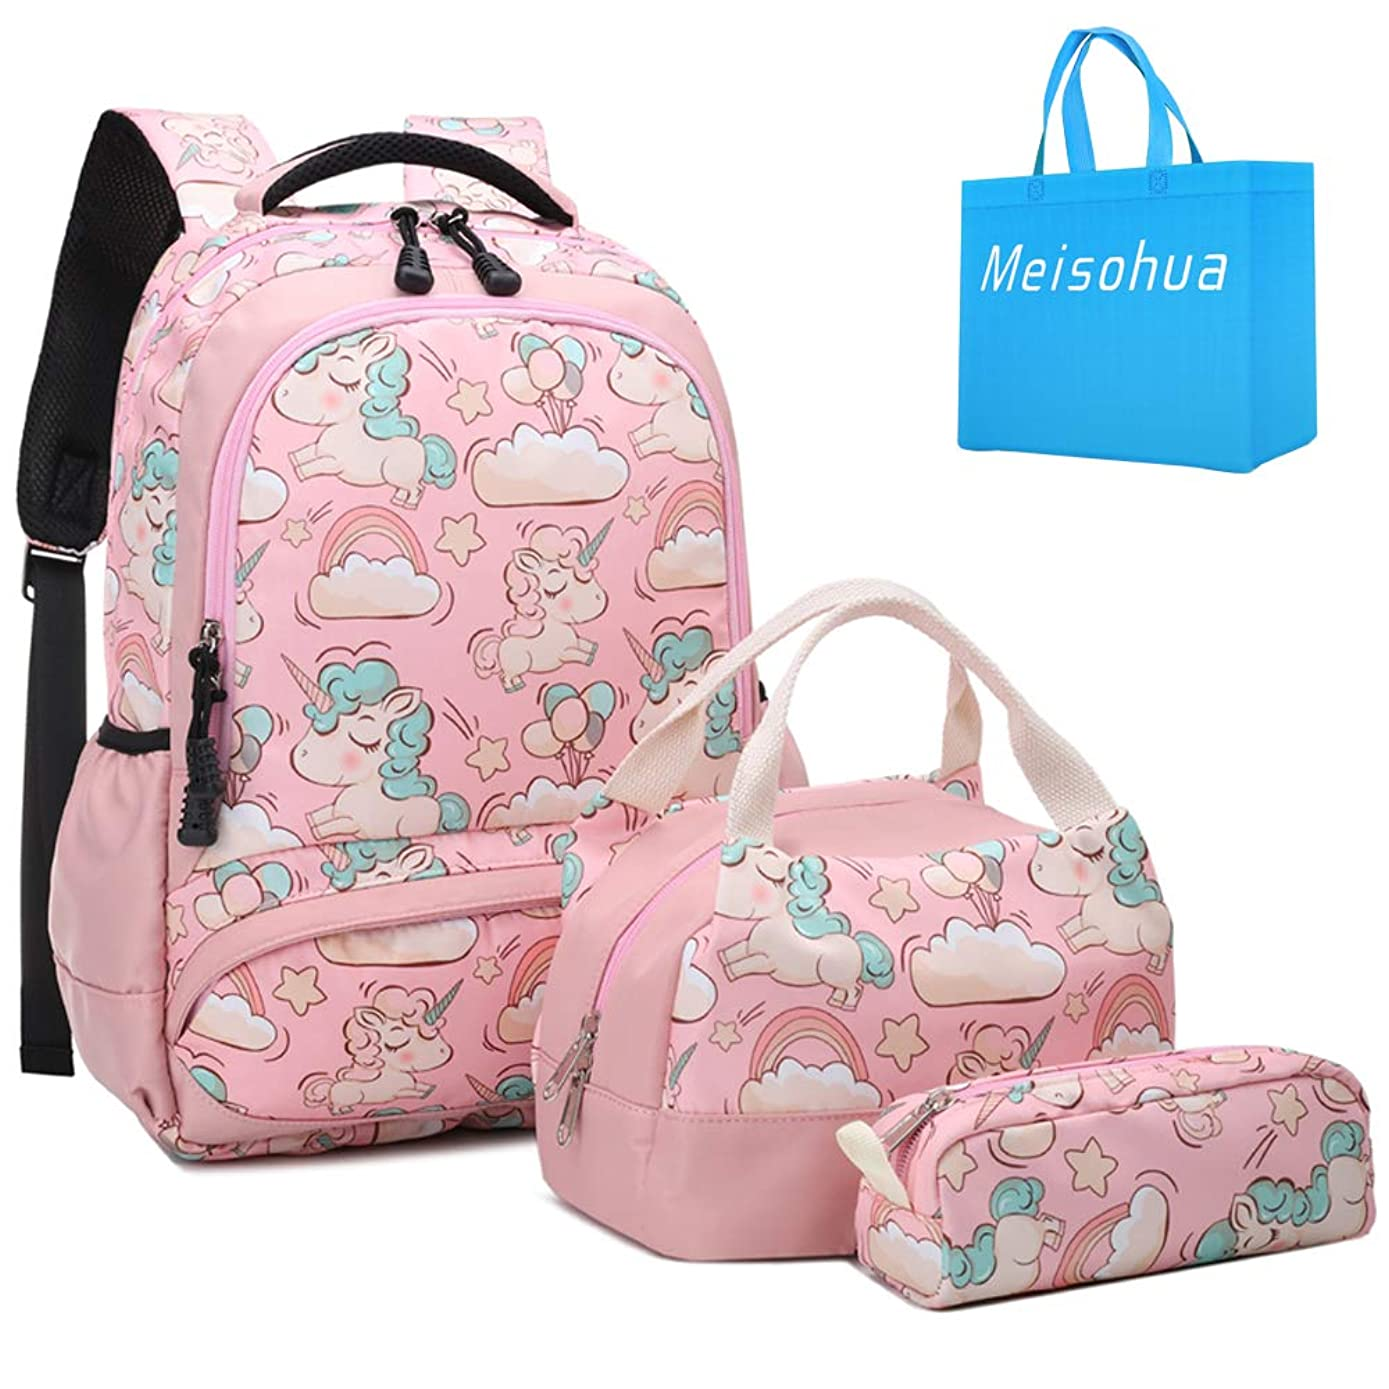 Meisohua School Backpacks Set Girls Unicorn Backpack with Lunch Bag and Pencil Case Kids 3 in 1 Bookbags Set School Bag for Elementary Preschool Water Resistant (Pink)